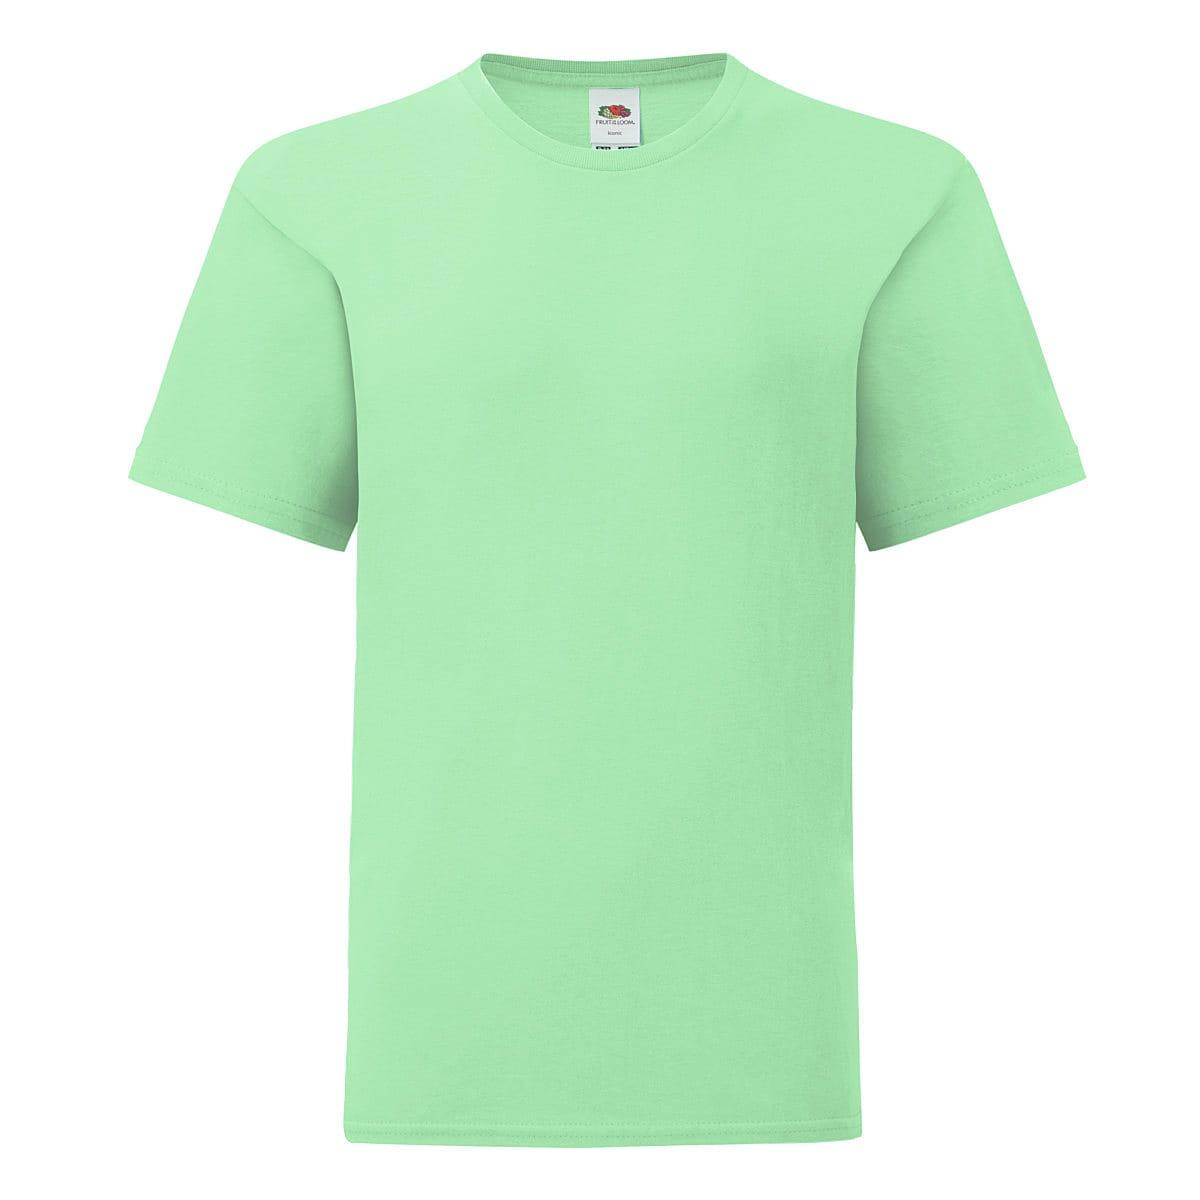 Fruit Of The Loom Kids Iconic T-Shirt in Neo Mint (Product Code: 61023)